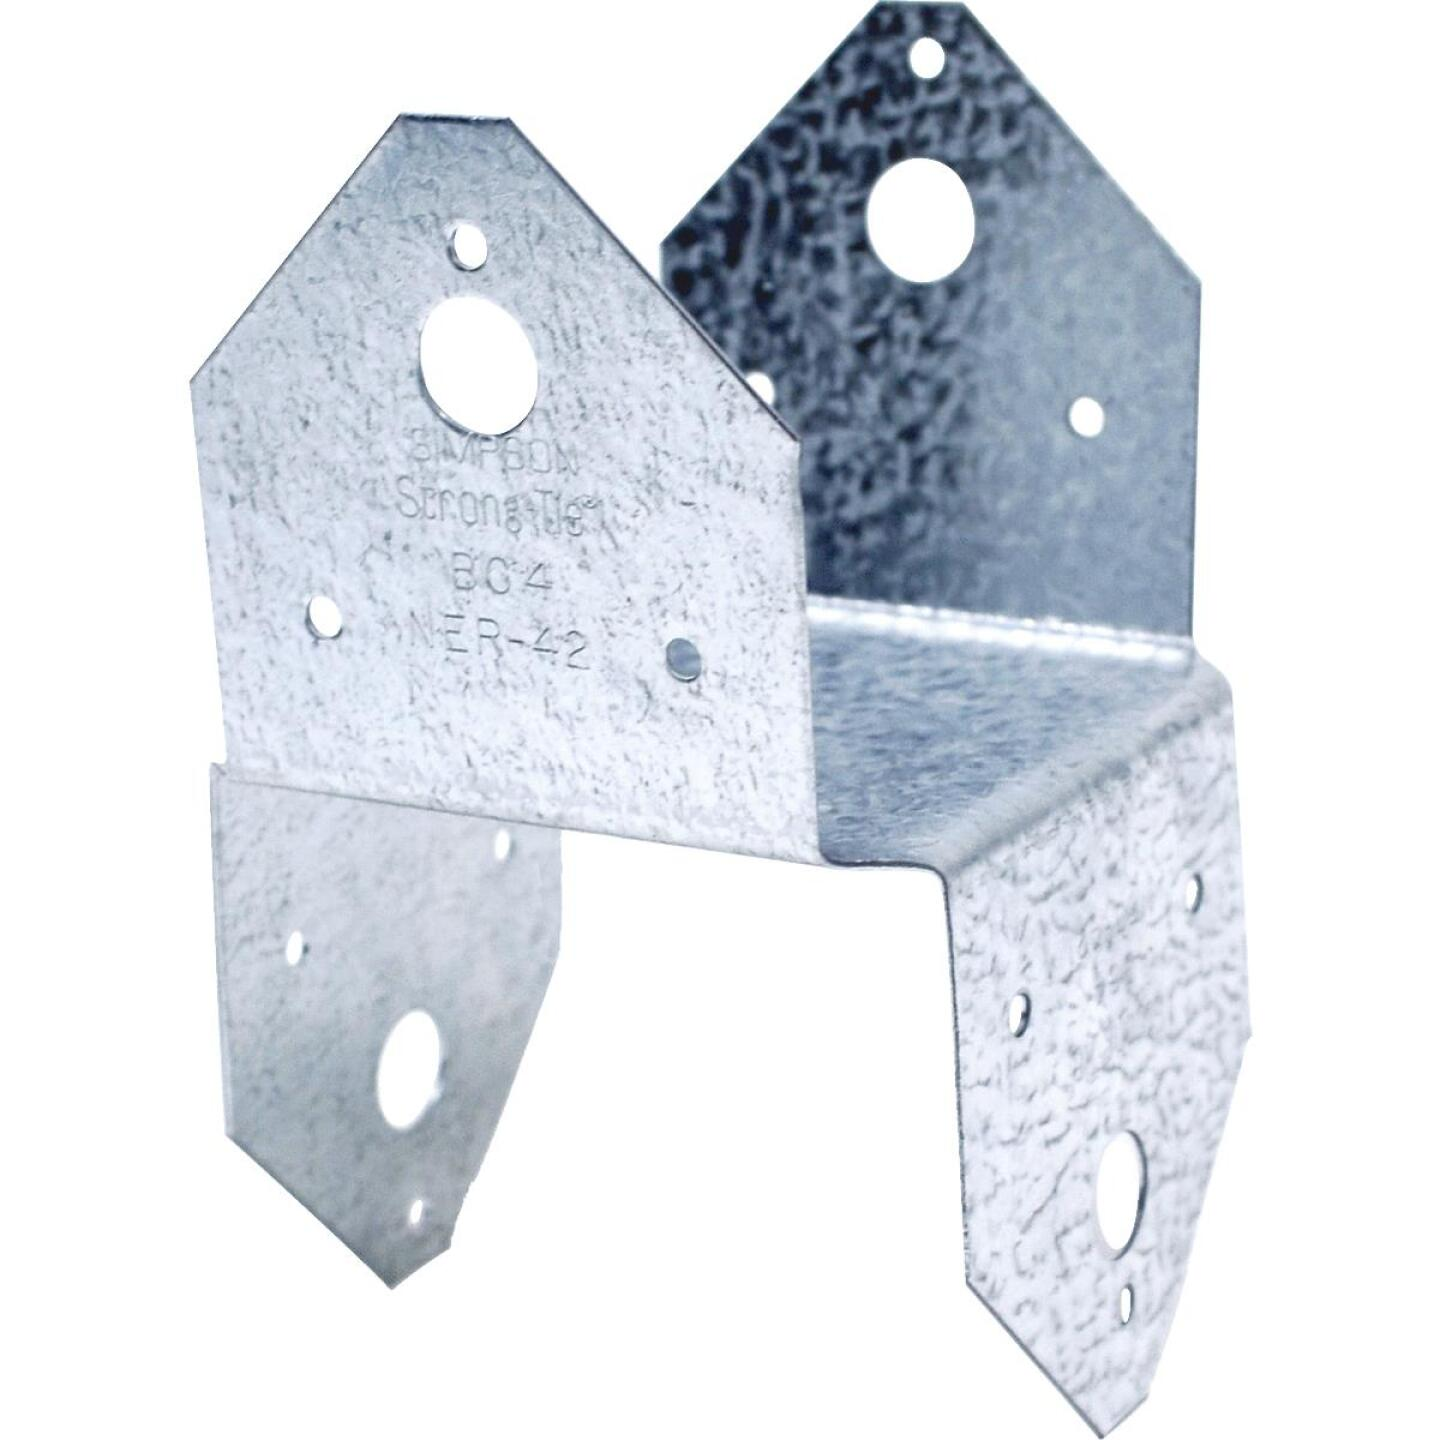 Simpson Strong-Tie 4 In. x 4 In. 18 ga Galvanized BC Post Cap & Base Image 1